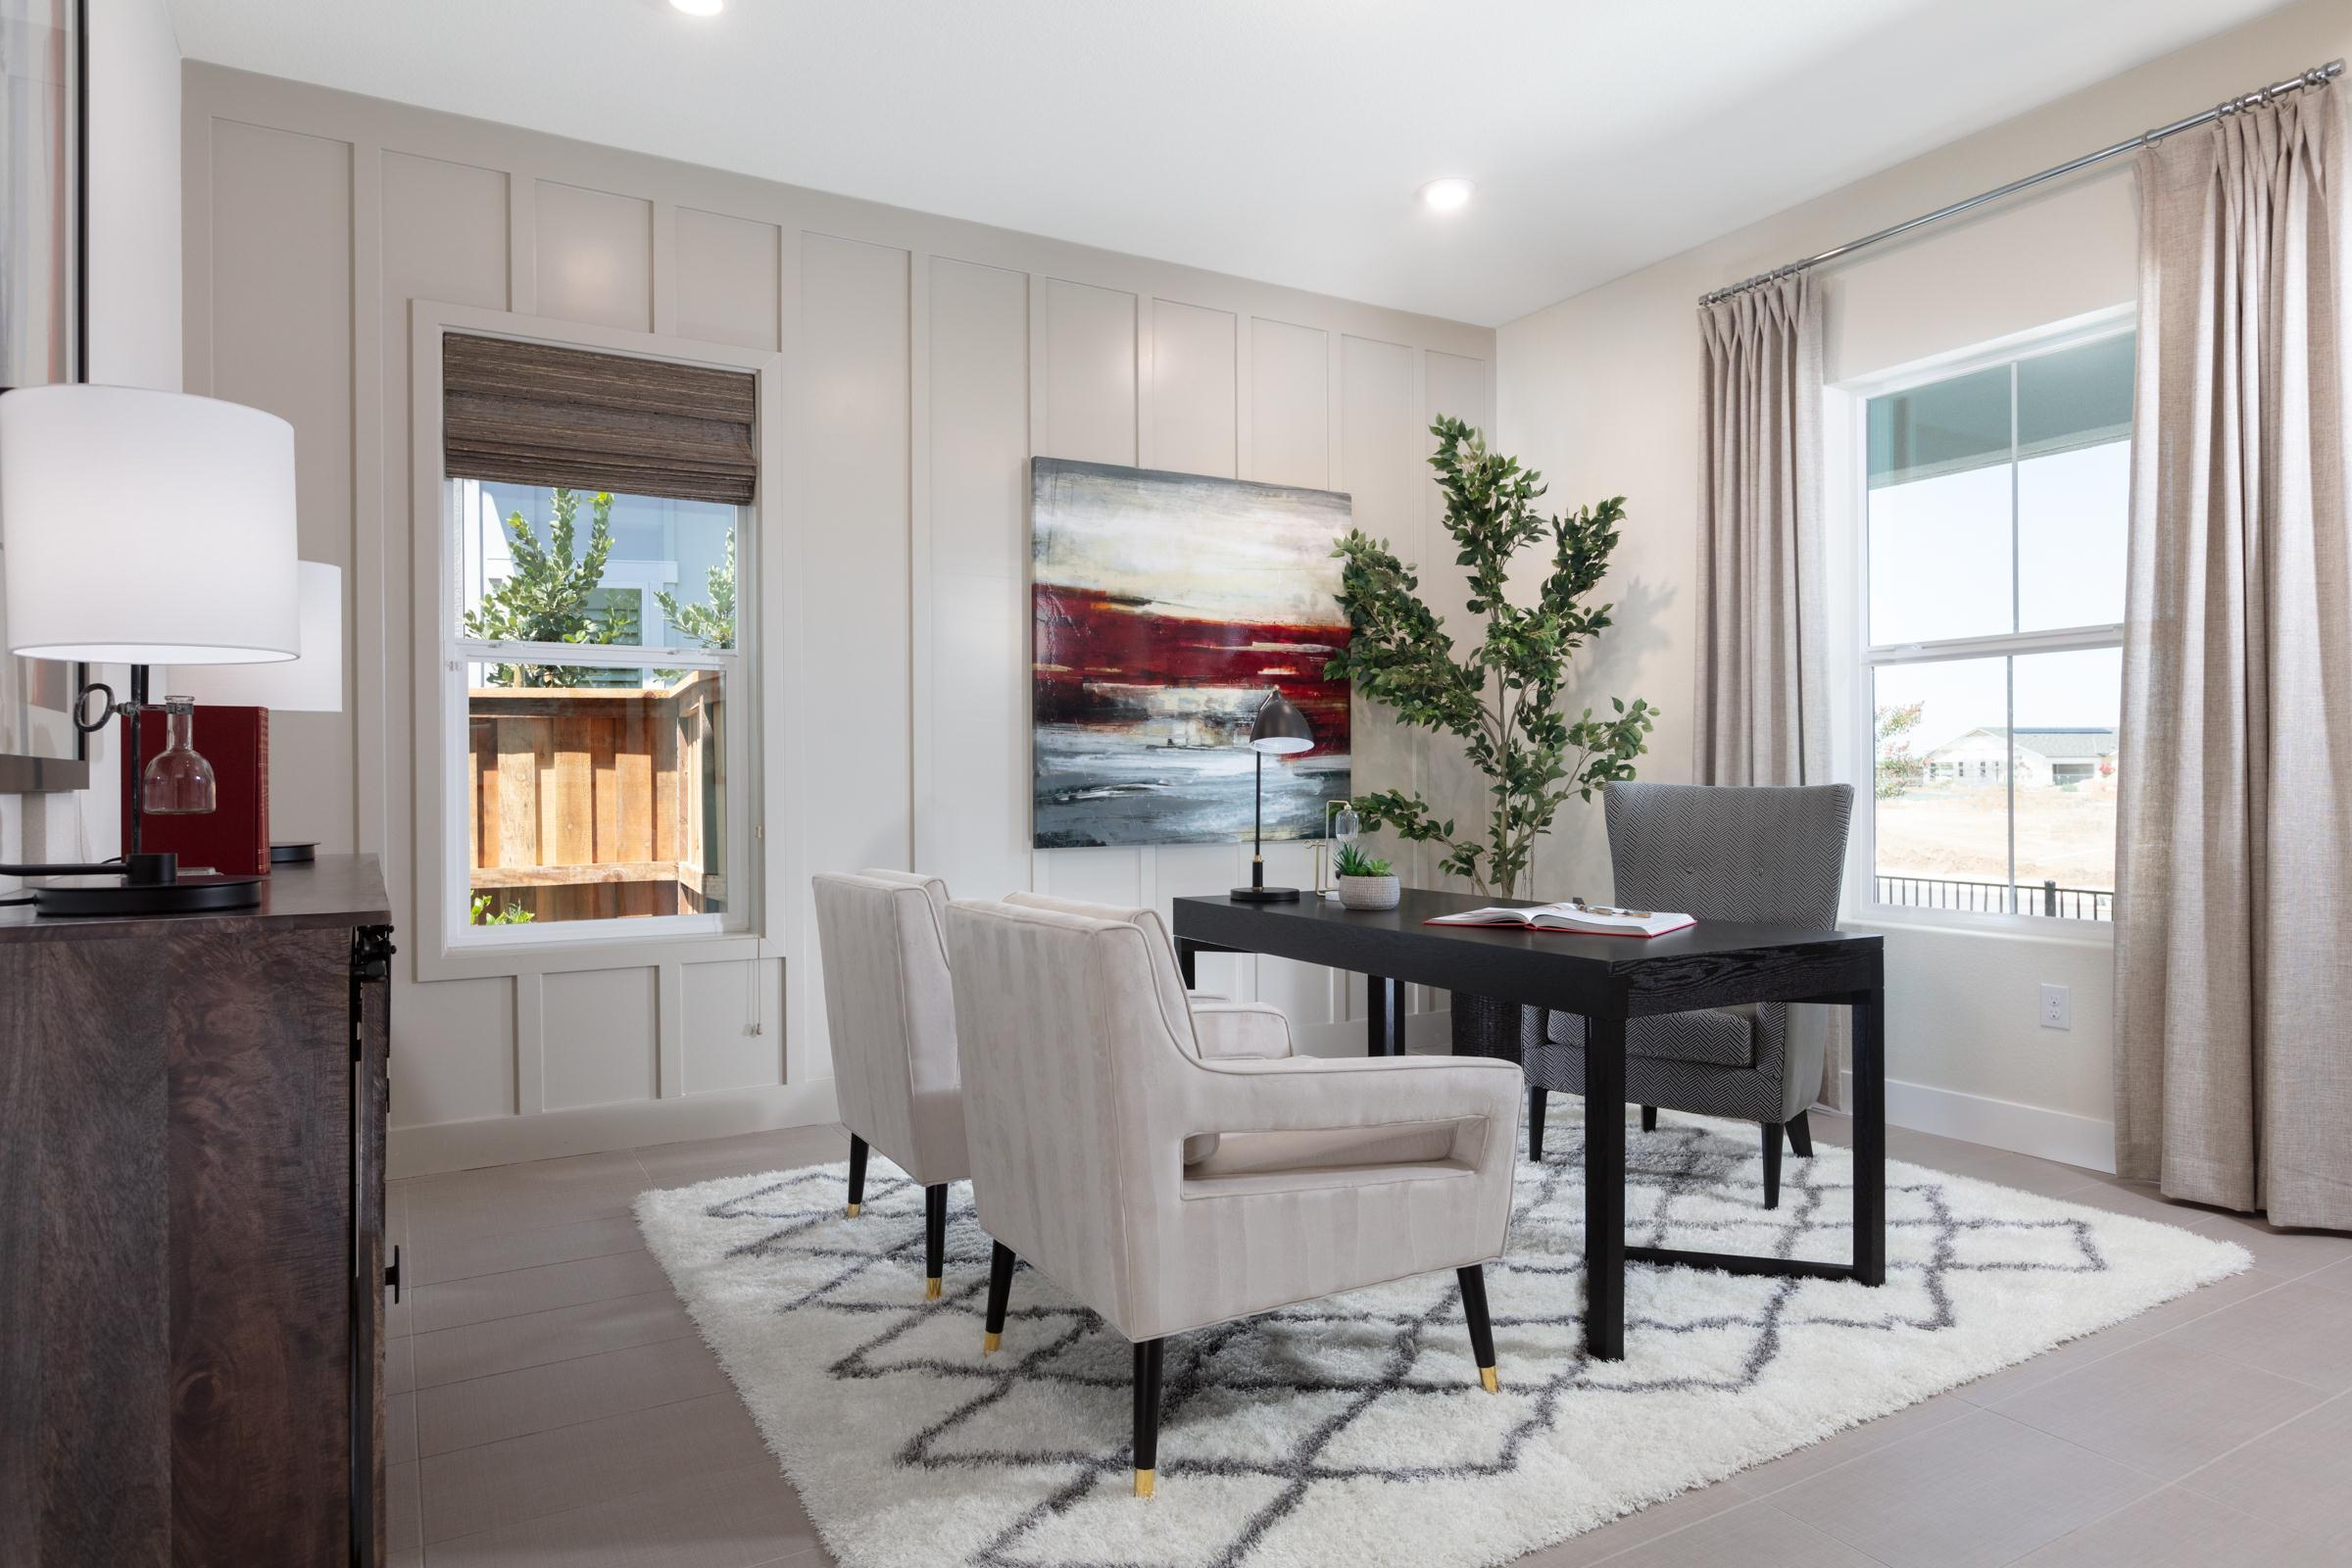 Kitchen featured in the Plan 1 Bungalow By Anthem United Homes Inc in Stockton-Lodi, CA